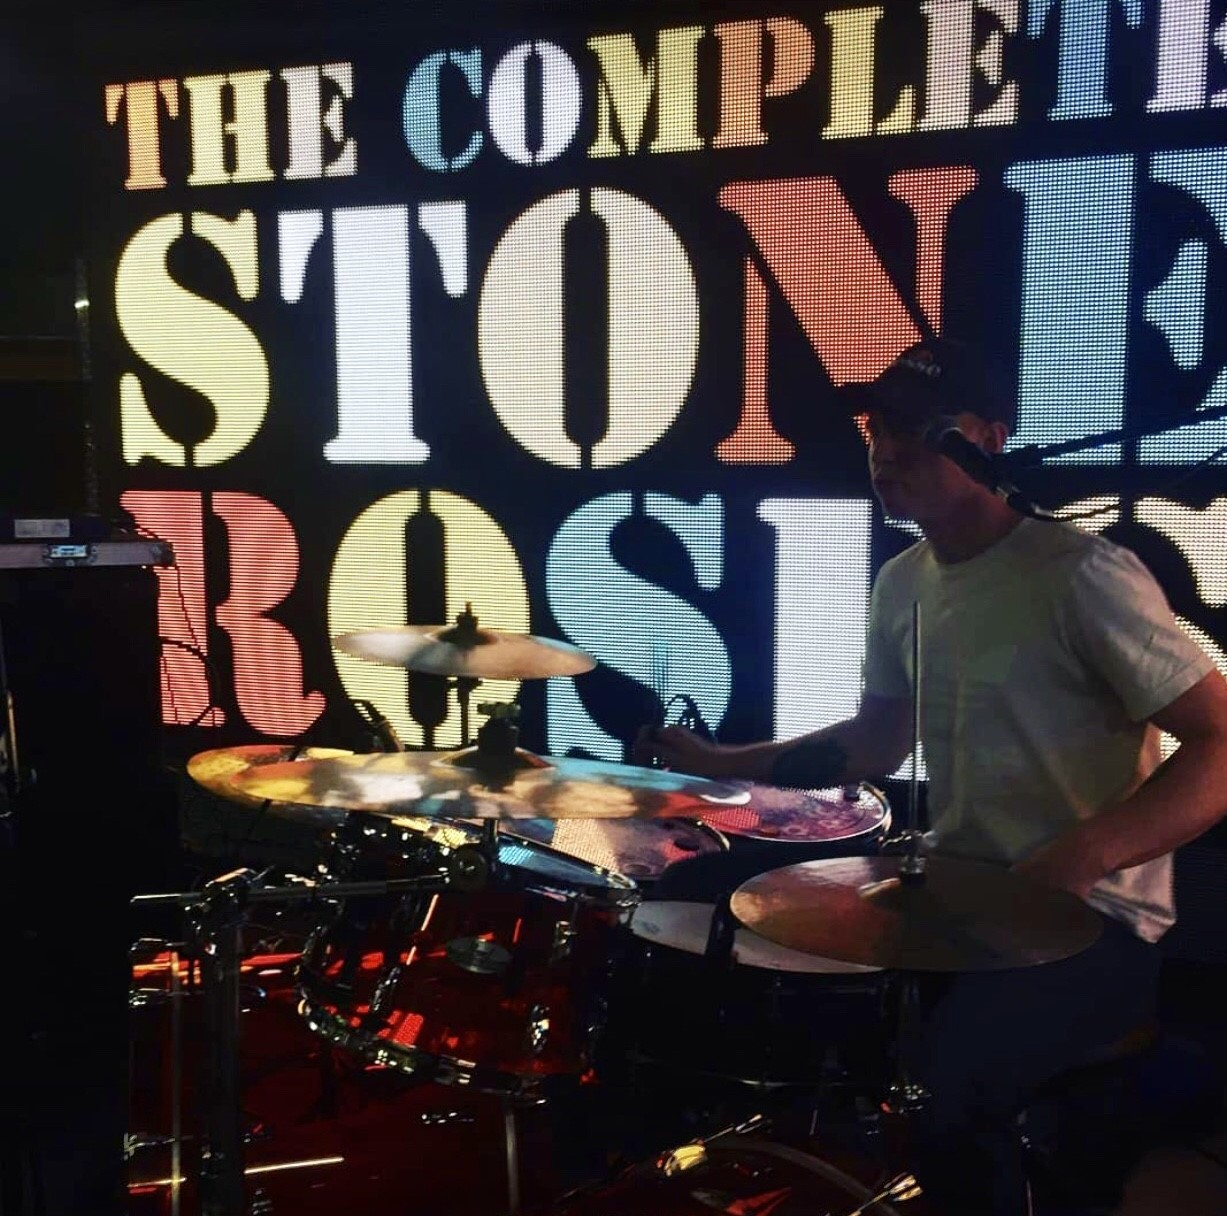 The Complete Stone Roses Live! At 1886, Douglas IOM on 29 Aug 2021 on ago. 29, 22:15@1886 Bar, Grill & Cocktail Lounge - Buy tickets and Get information on RS PROMOTIONS